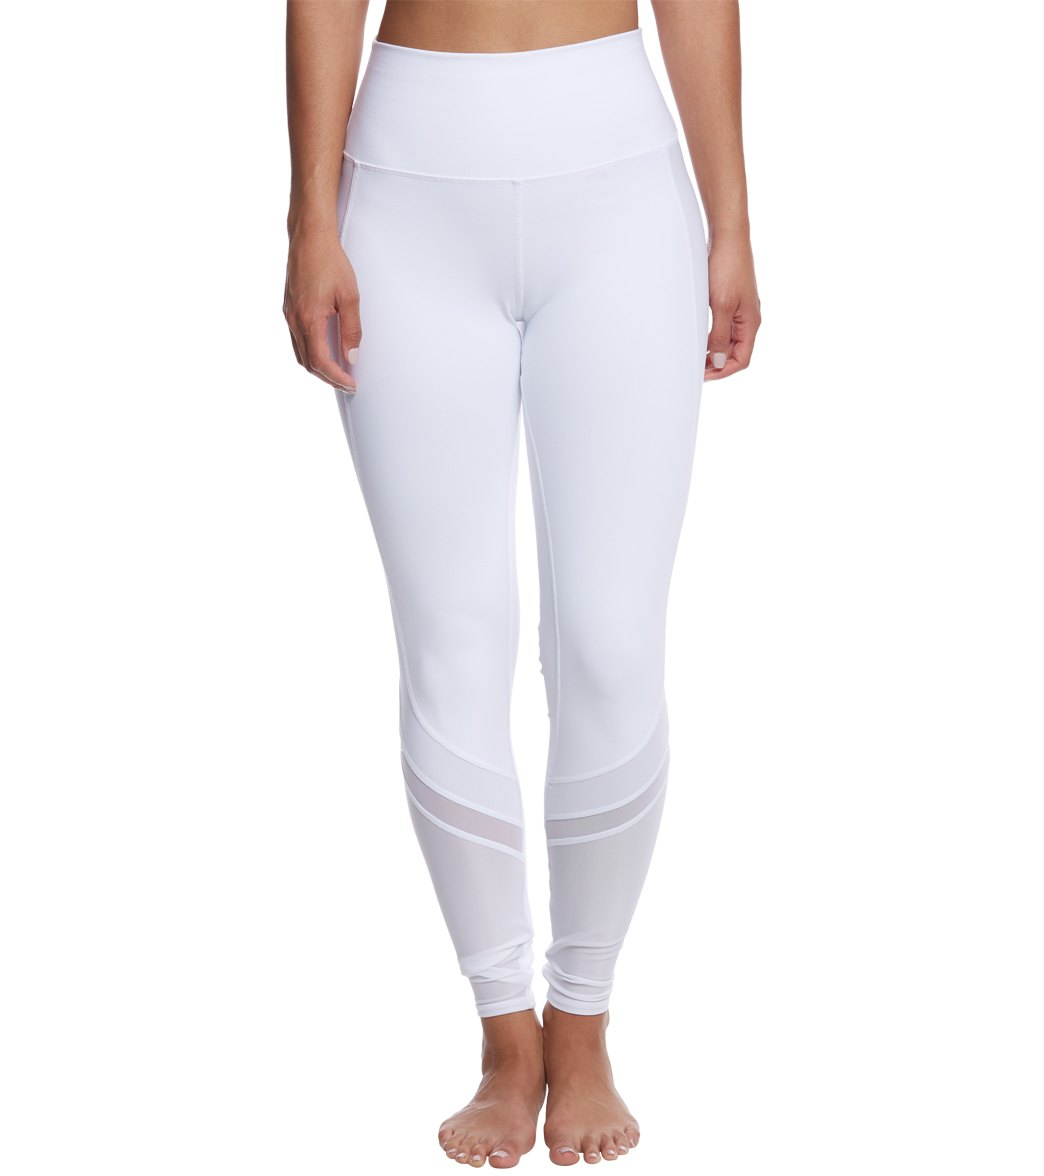 a9ecc23f835bdc Alo Yoga Elevate Yoga Leggings at SwimOutlet.com - Free Shipping